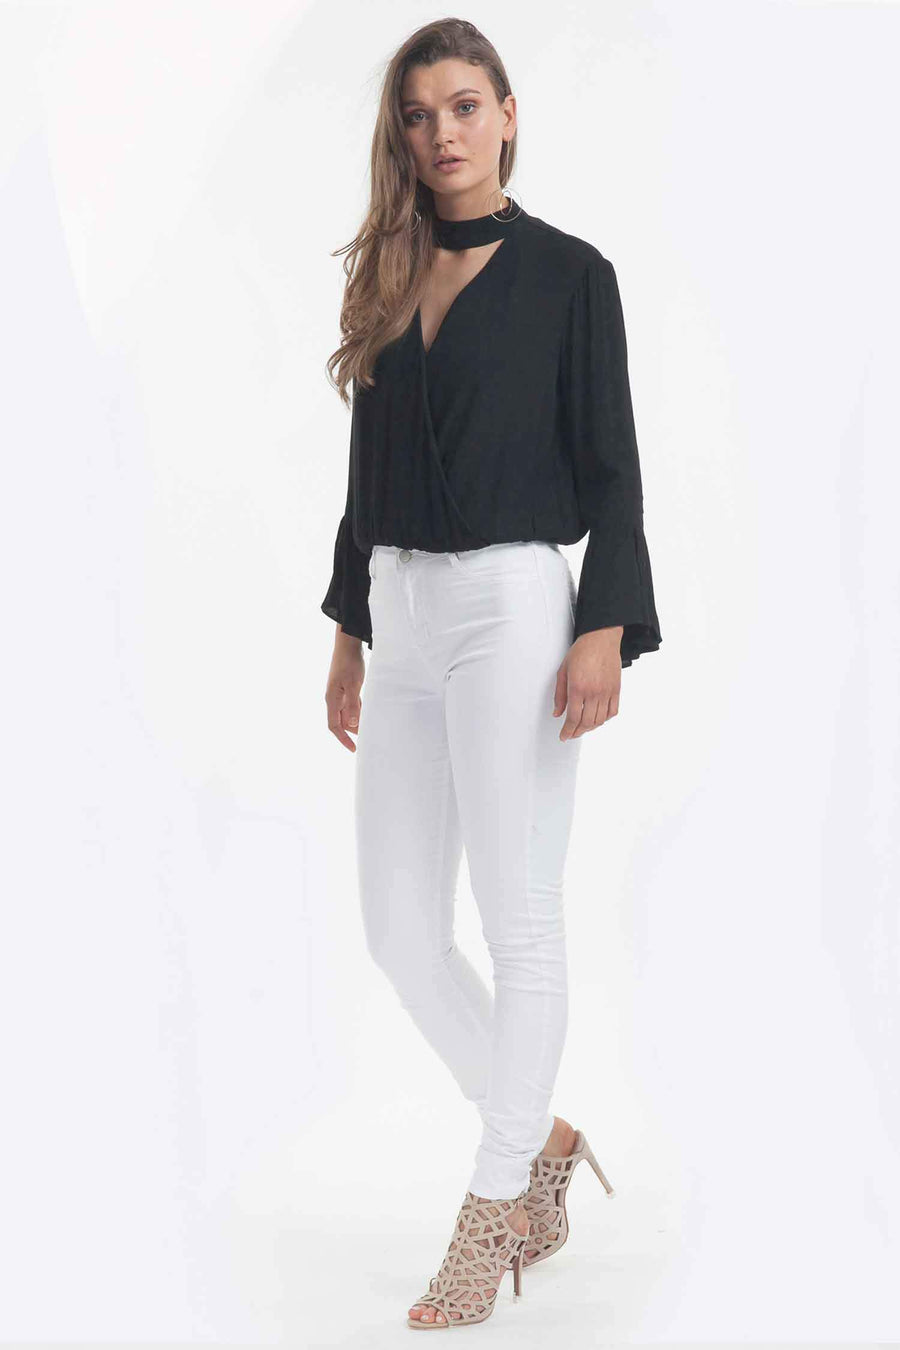 Allure Blouse in Black